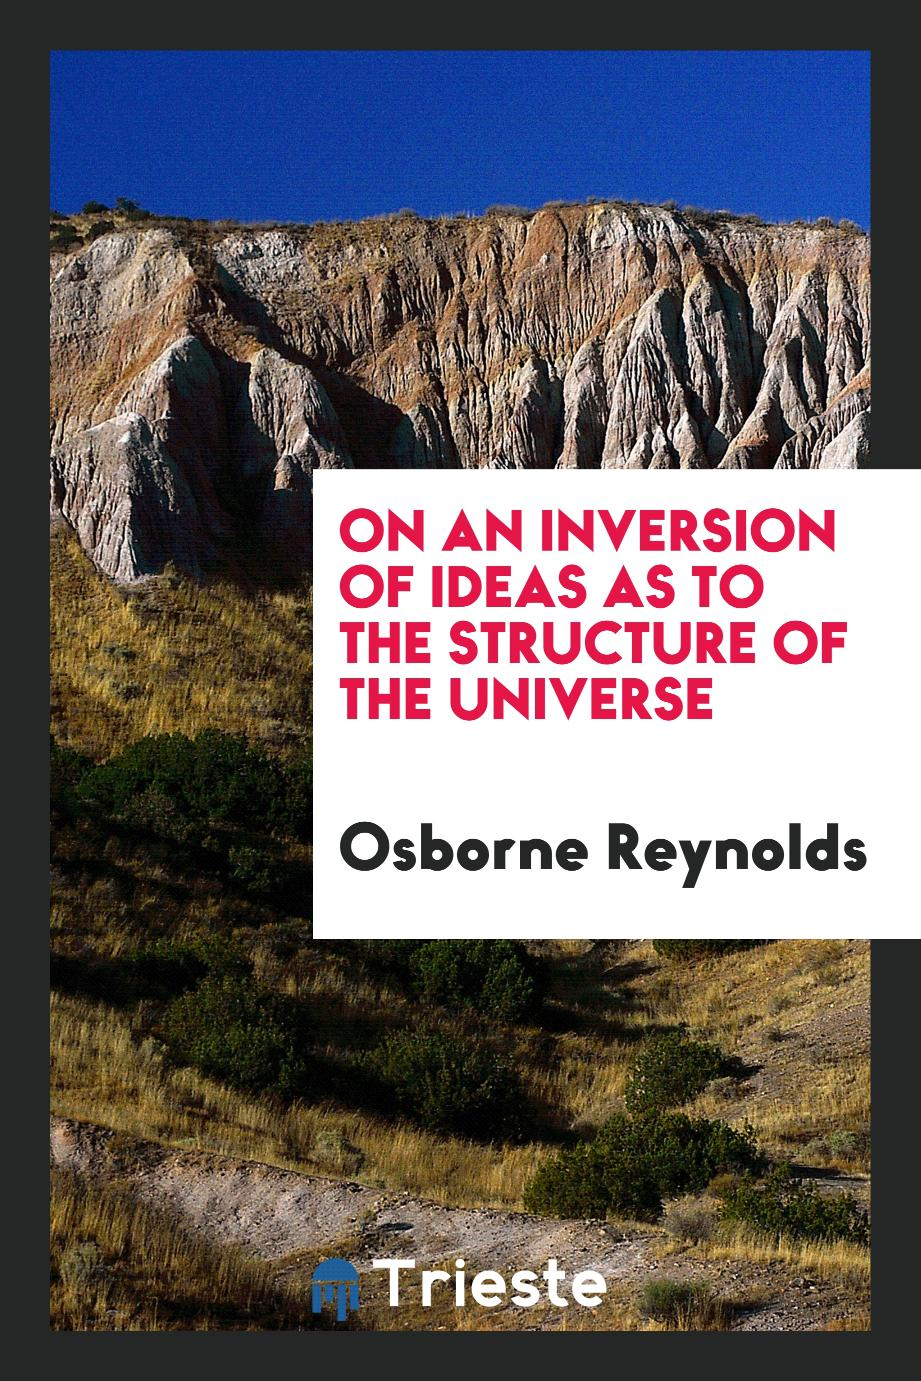 On an Inversion of Ideas as to the Structure of the Universe